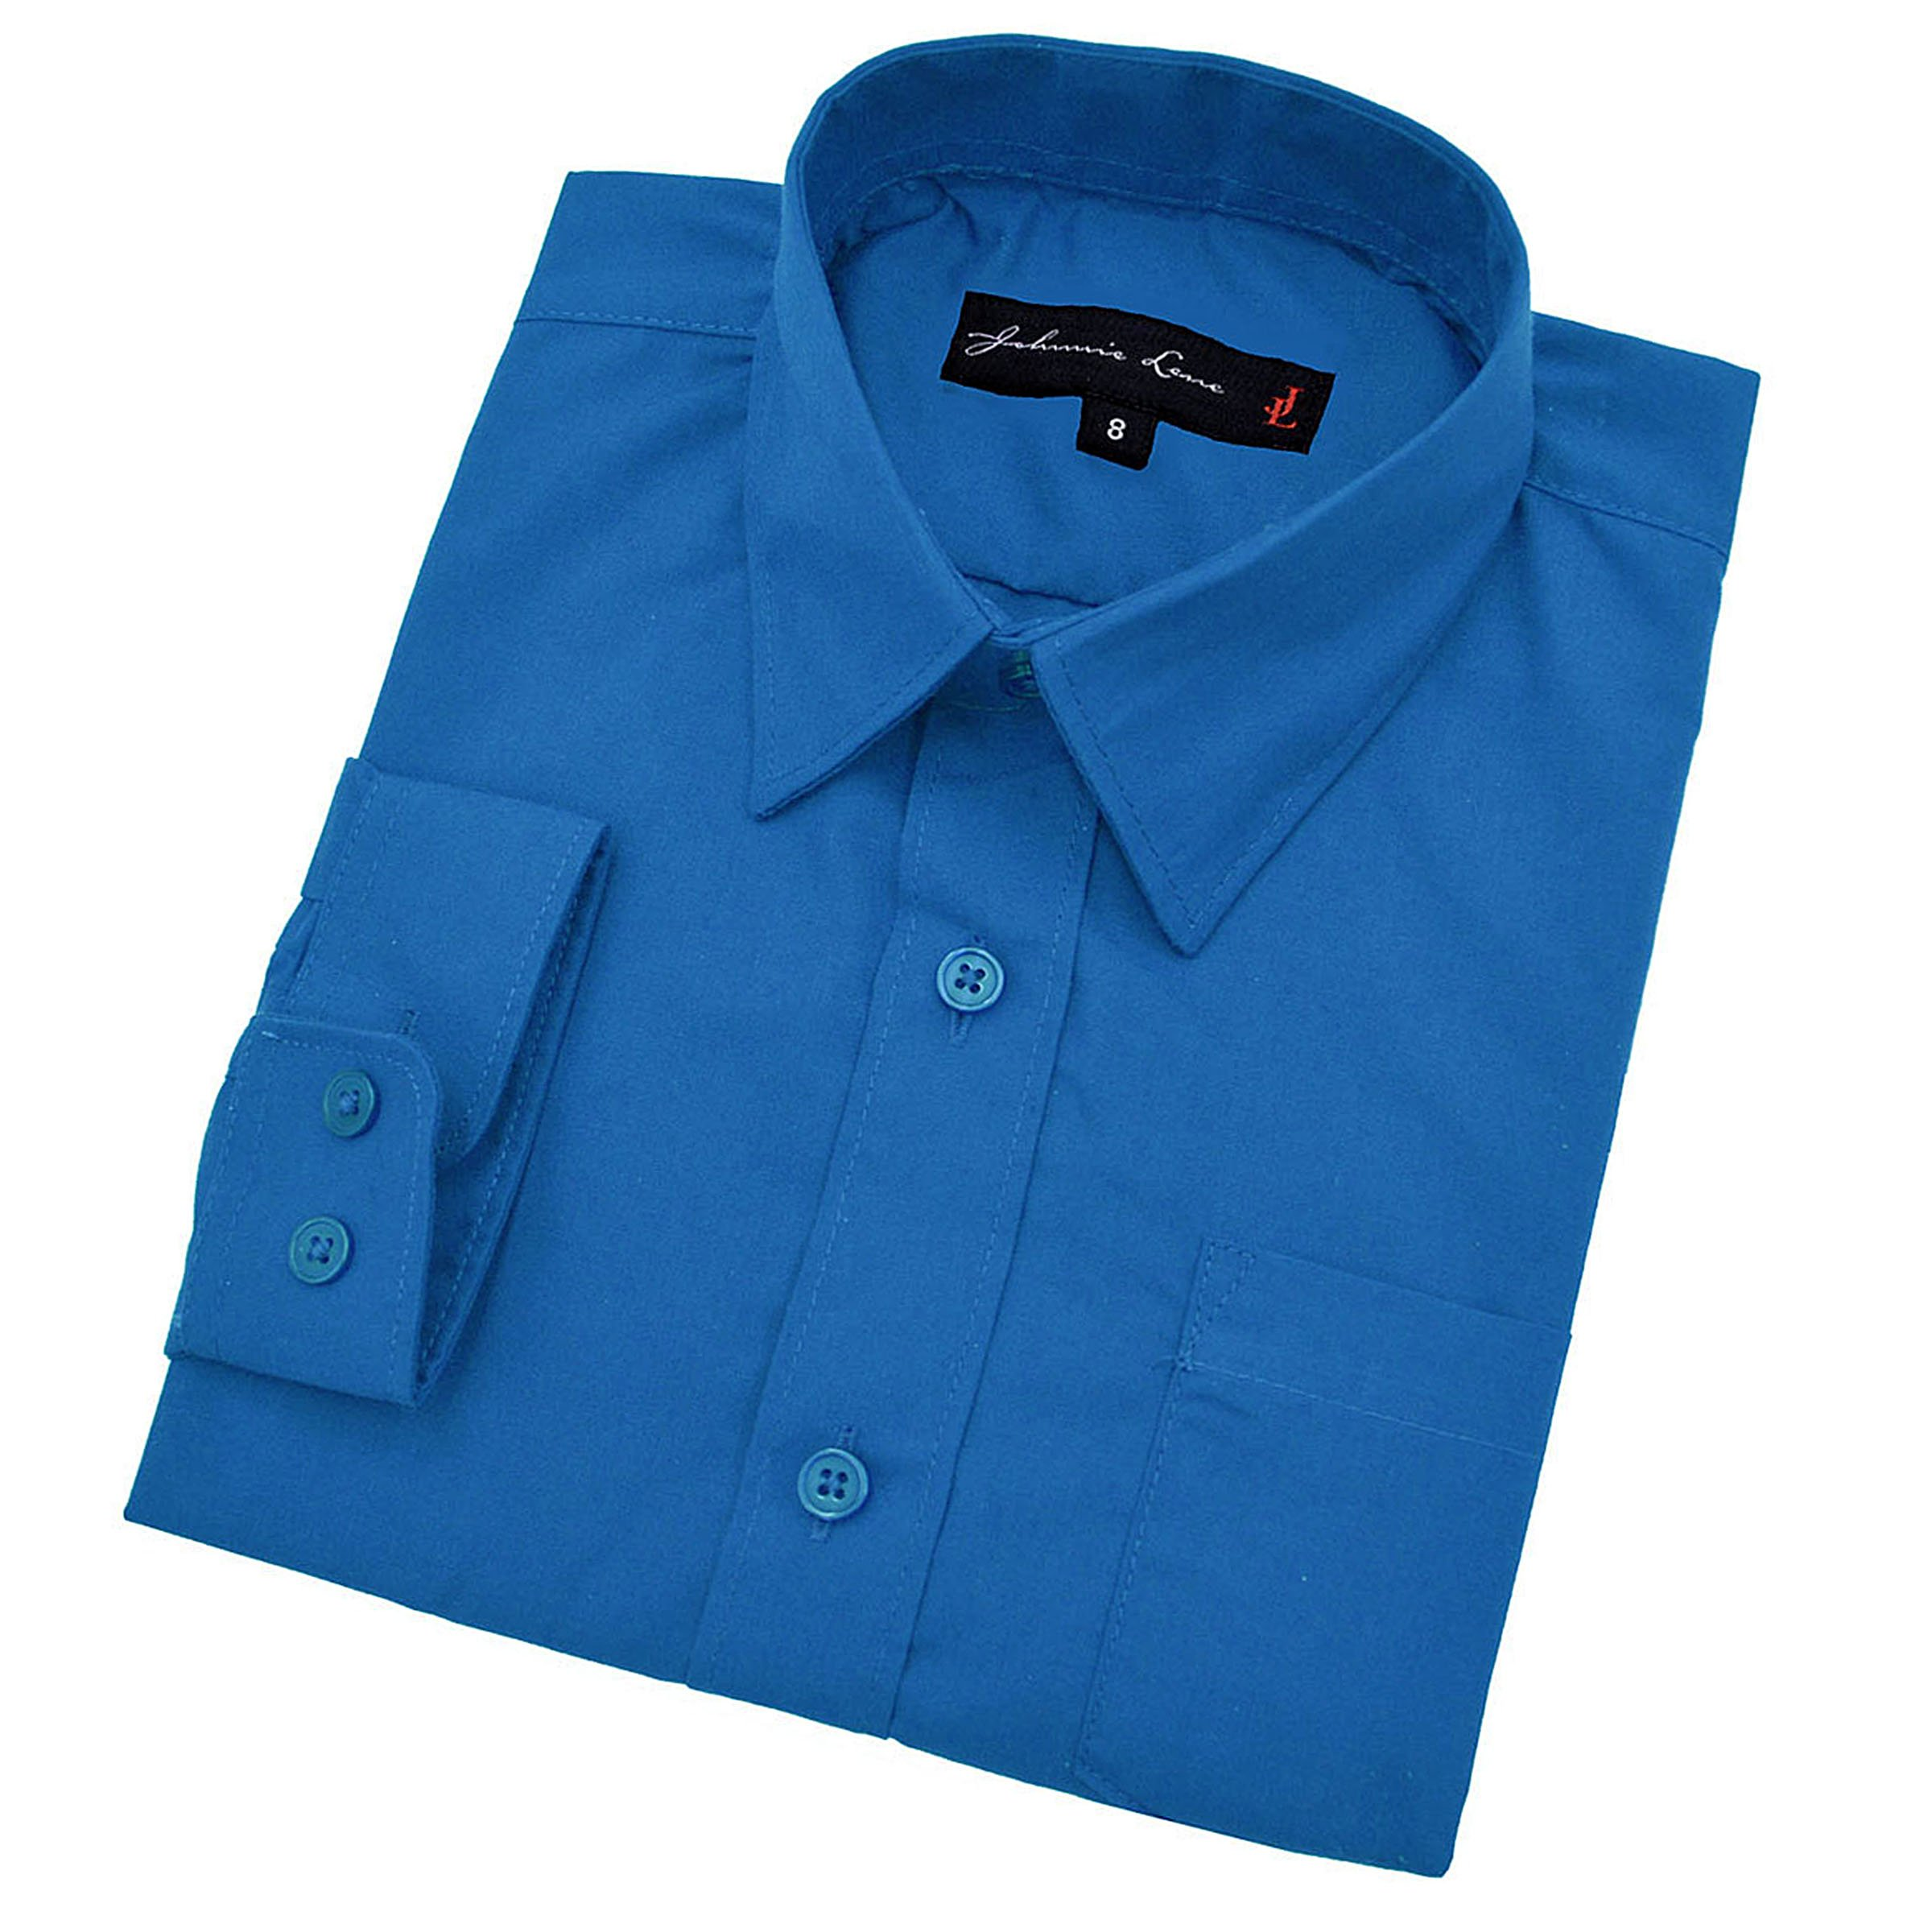 Johnnie Lene Baby Boy's Long Sleeves Solid Dress Shirt #JL32 (12 Months, Vivid Blue)